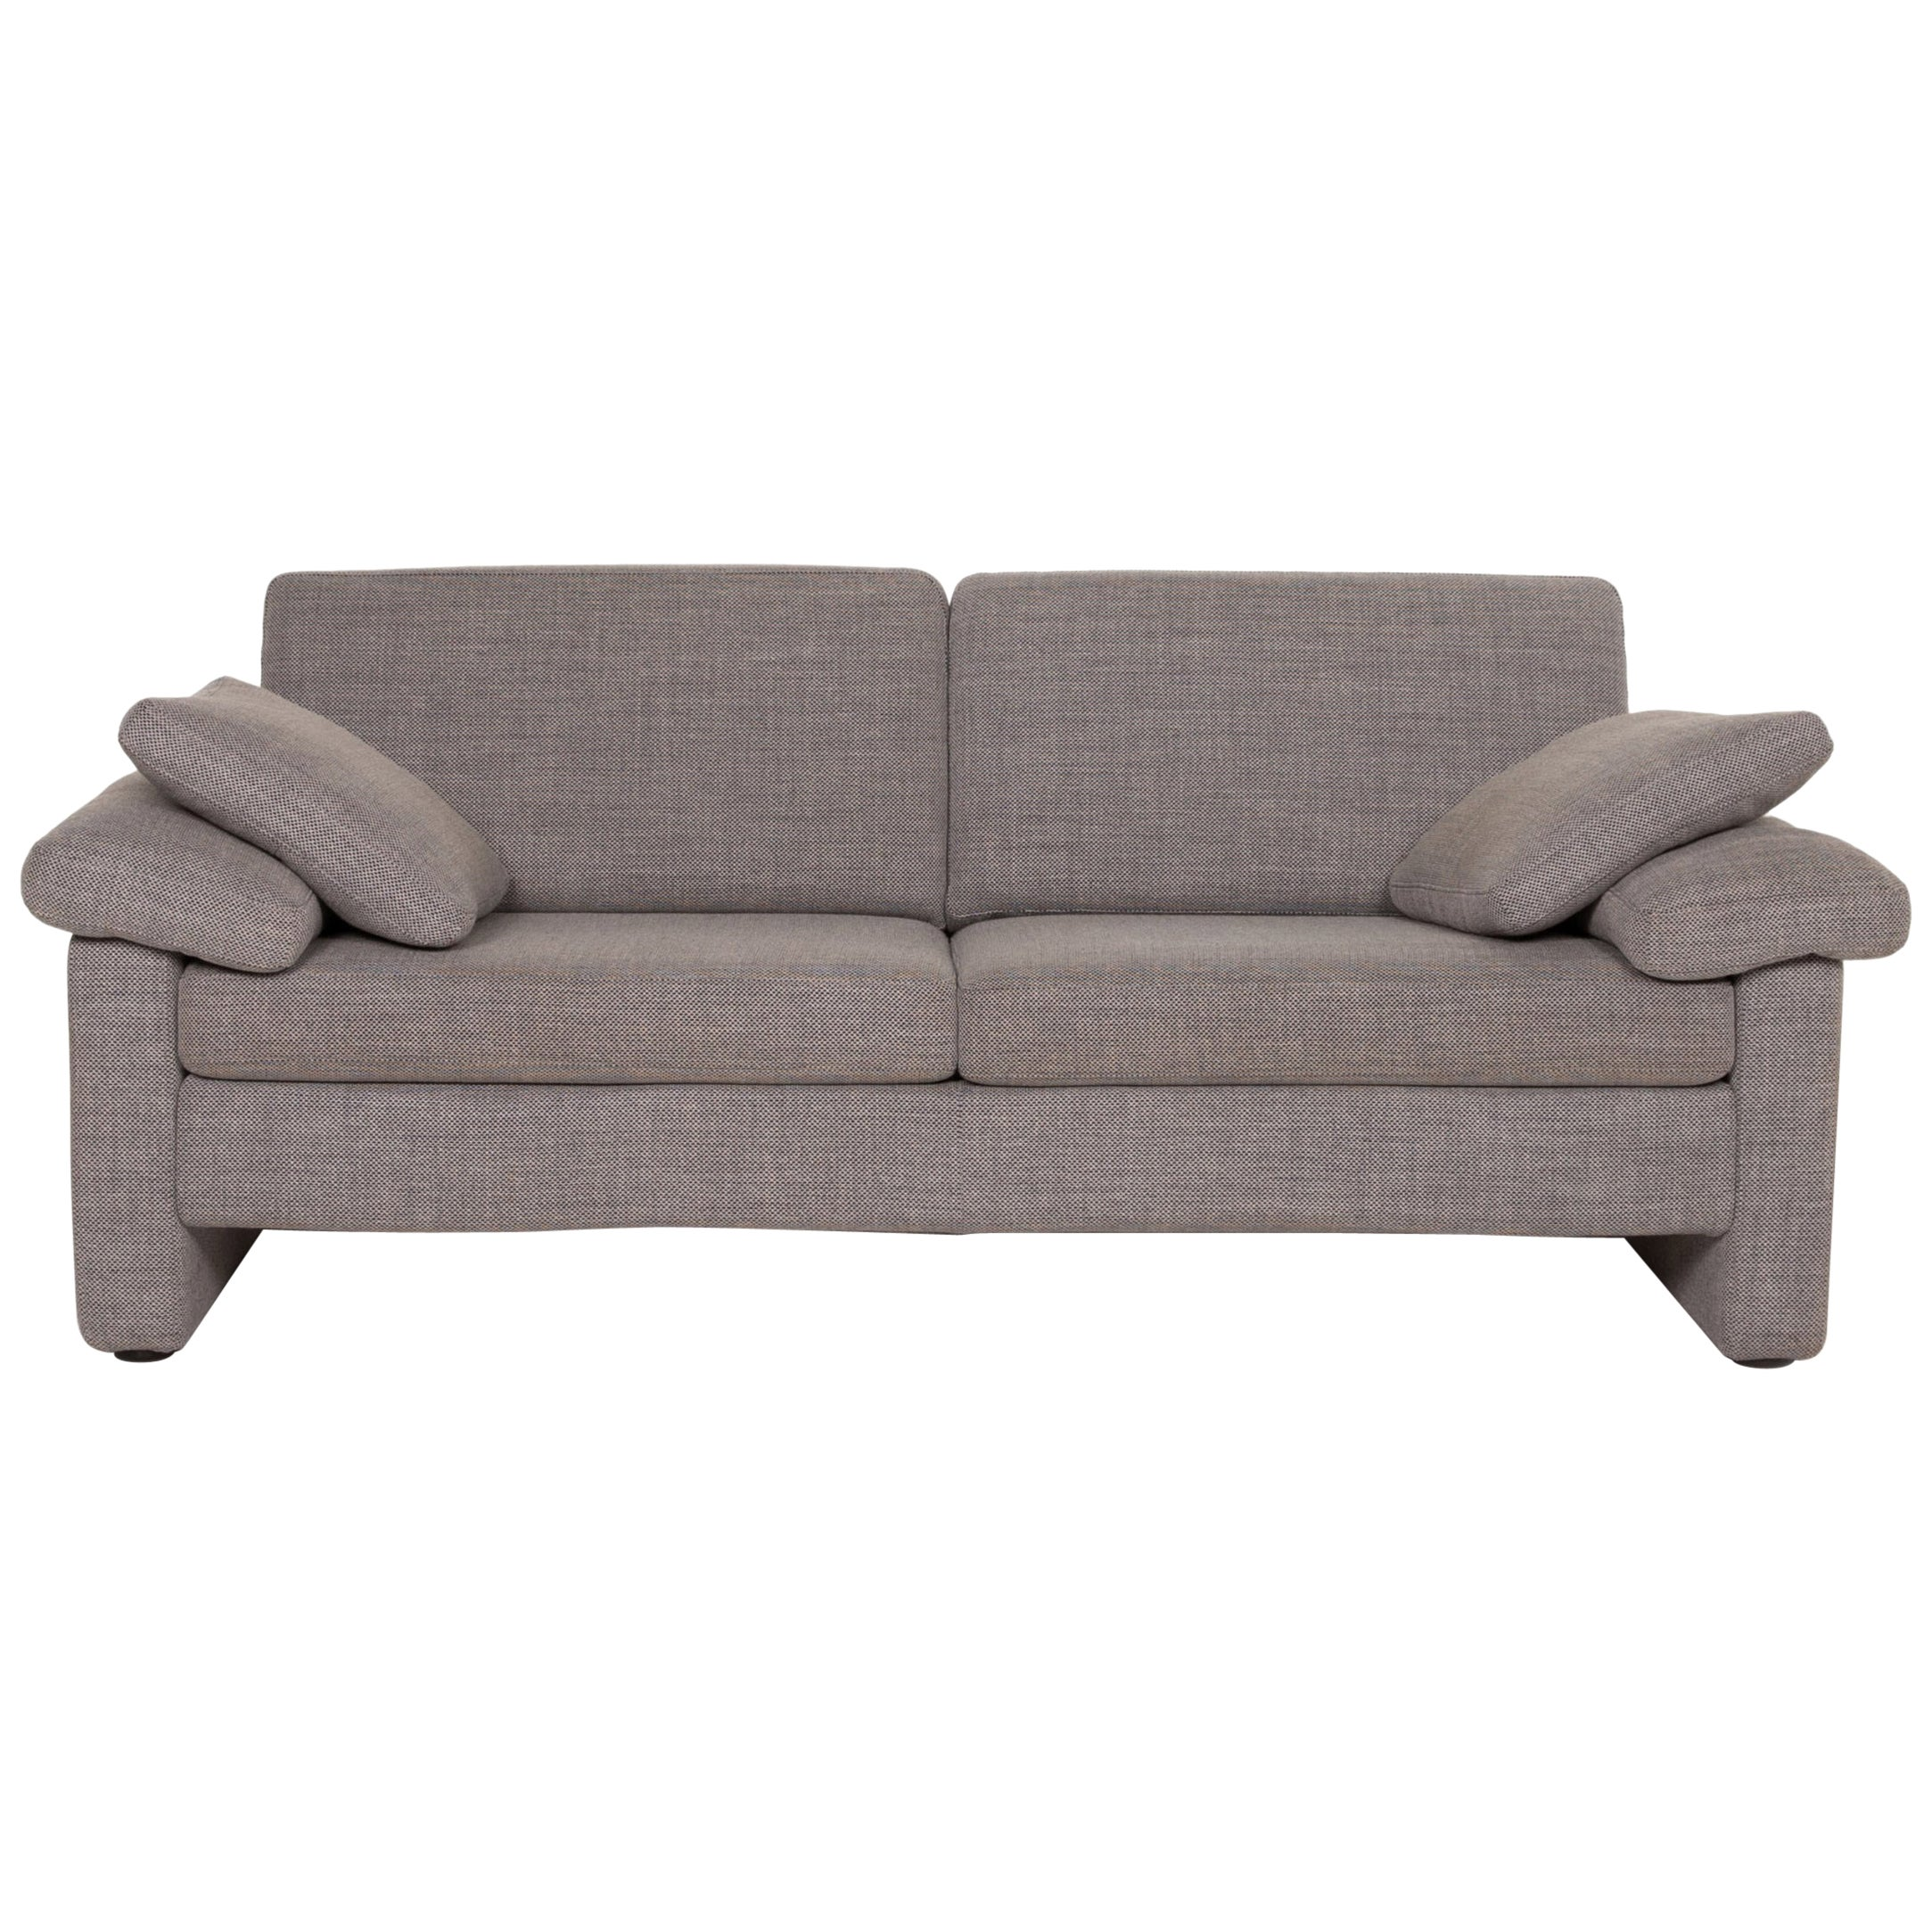 COR Conseta Fabric Sofa Gray Two-Seater Couch